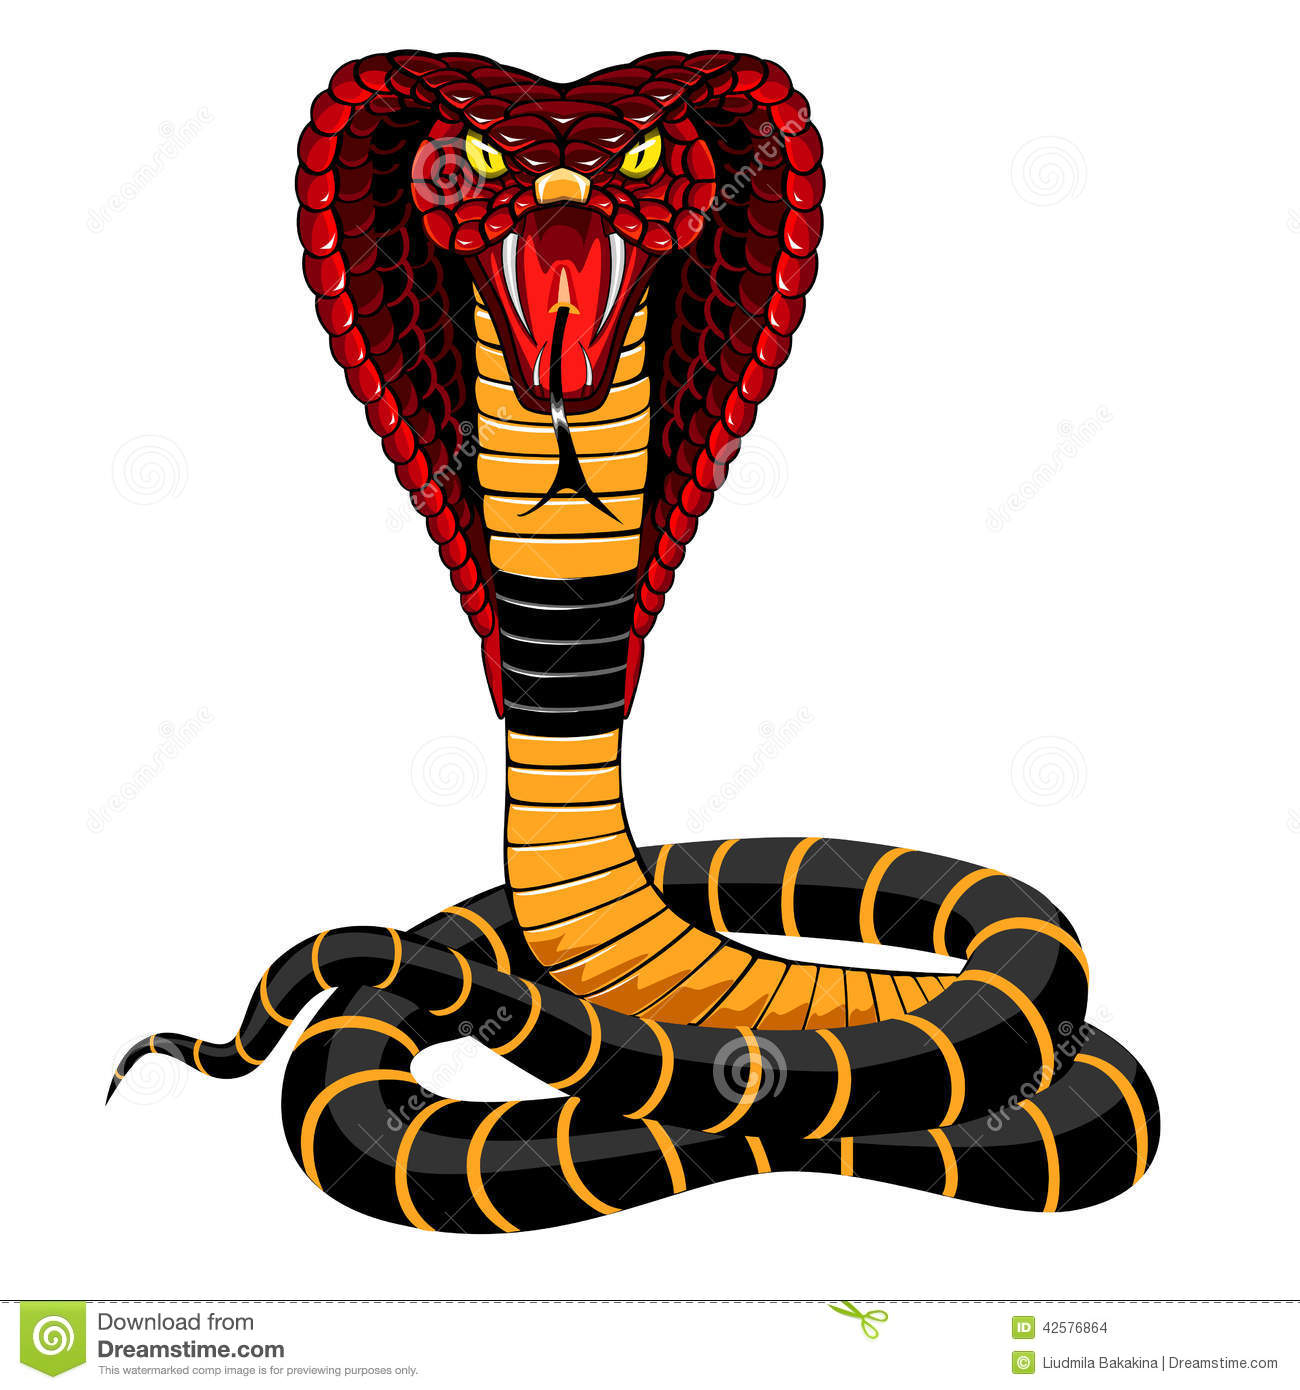 Cobra Stock Vector. Illustration Of Animal, Painting